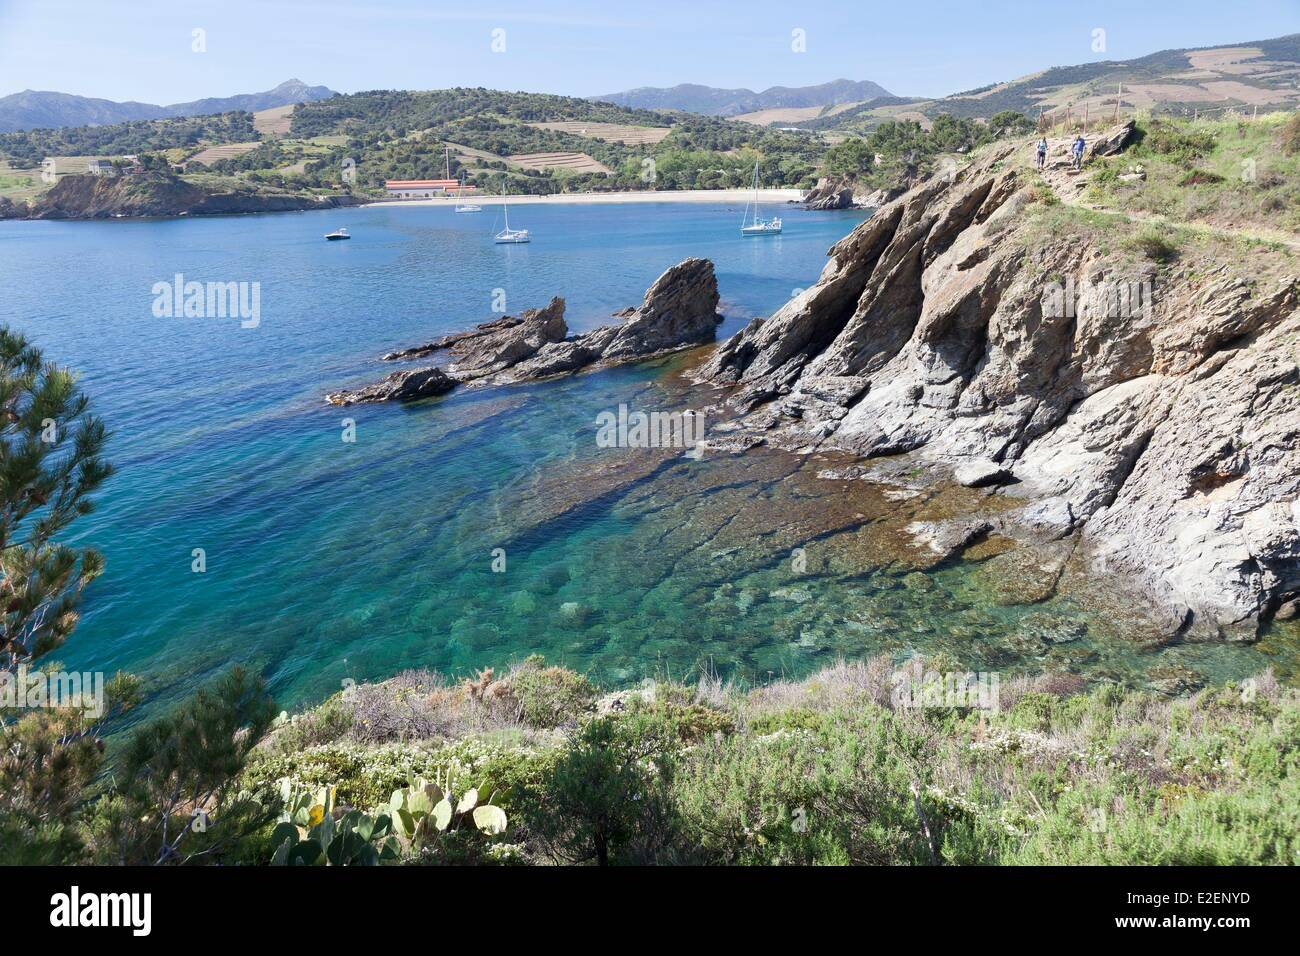 France pyrenees orientales banyuls sur mer cote vermeille paulilles stock photo royalty free - Immobilier port vendres pyrenees orientales ...